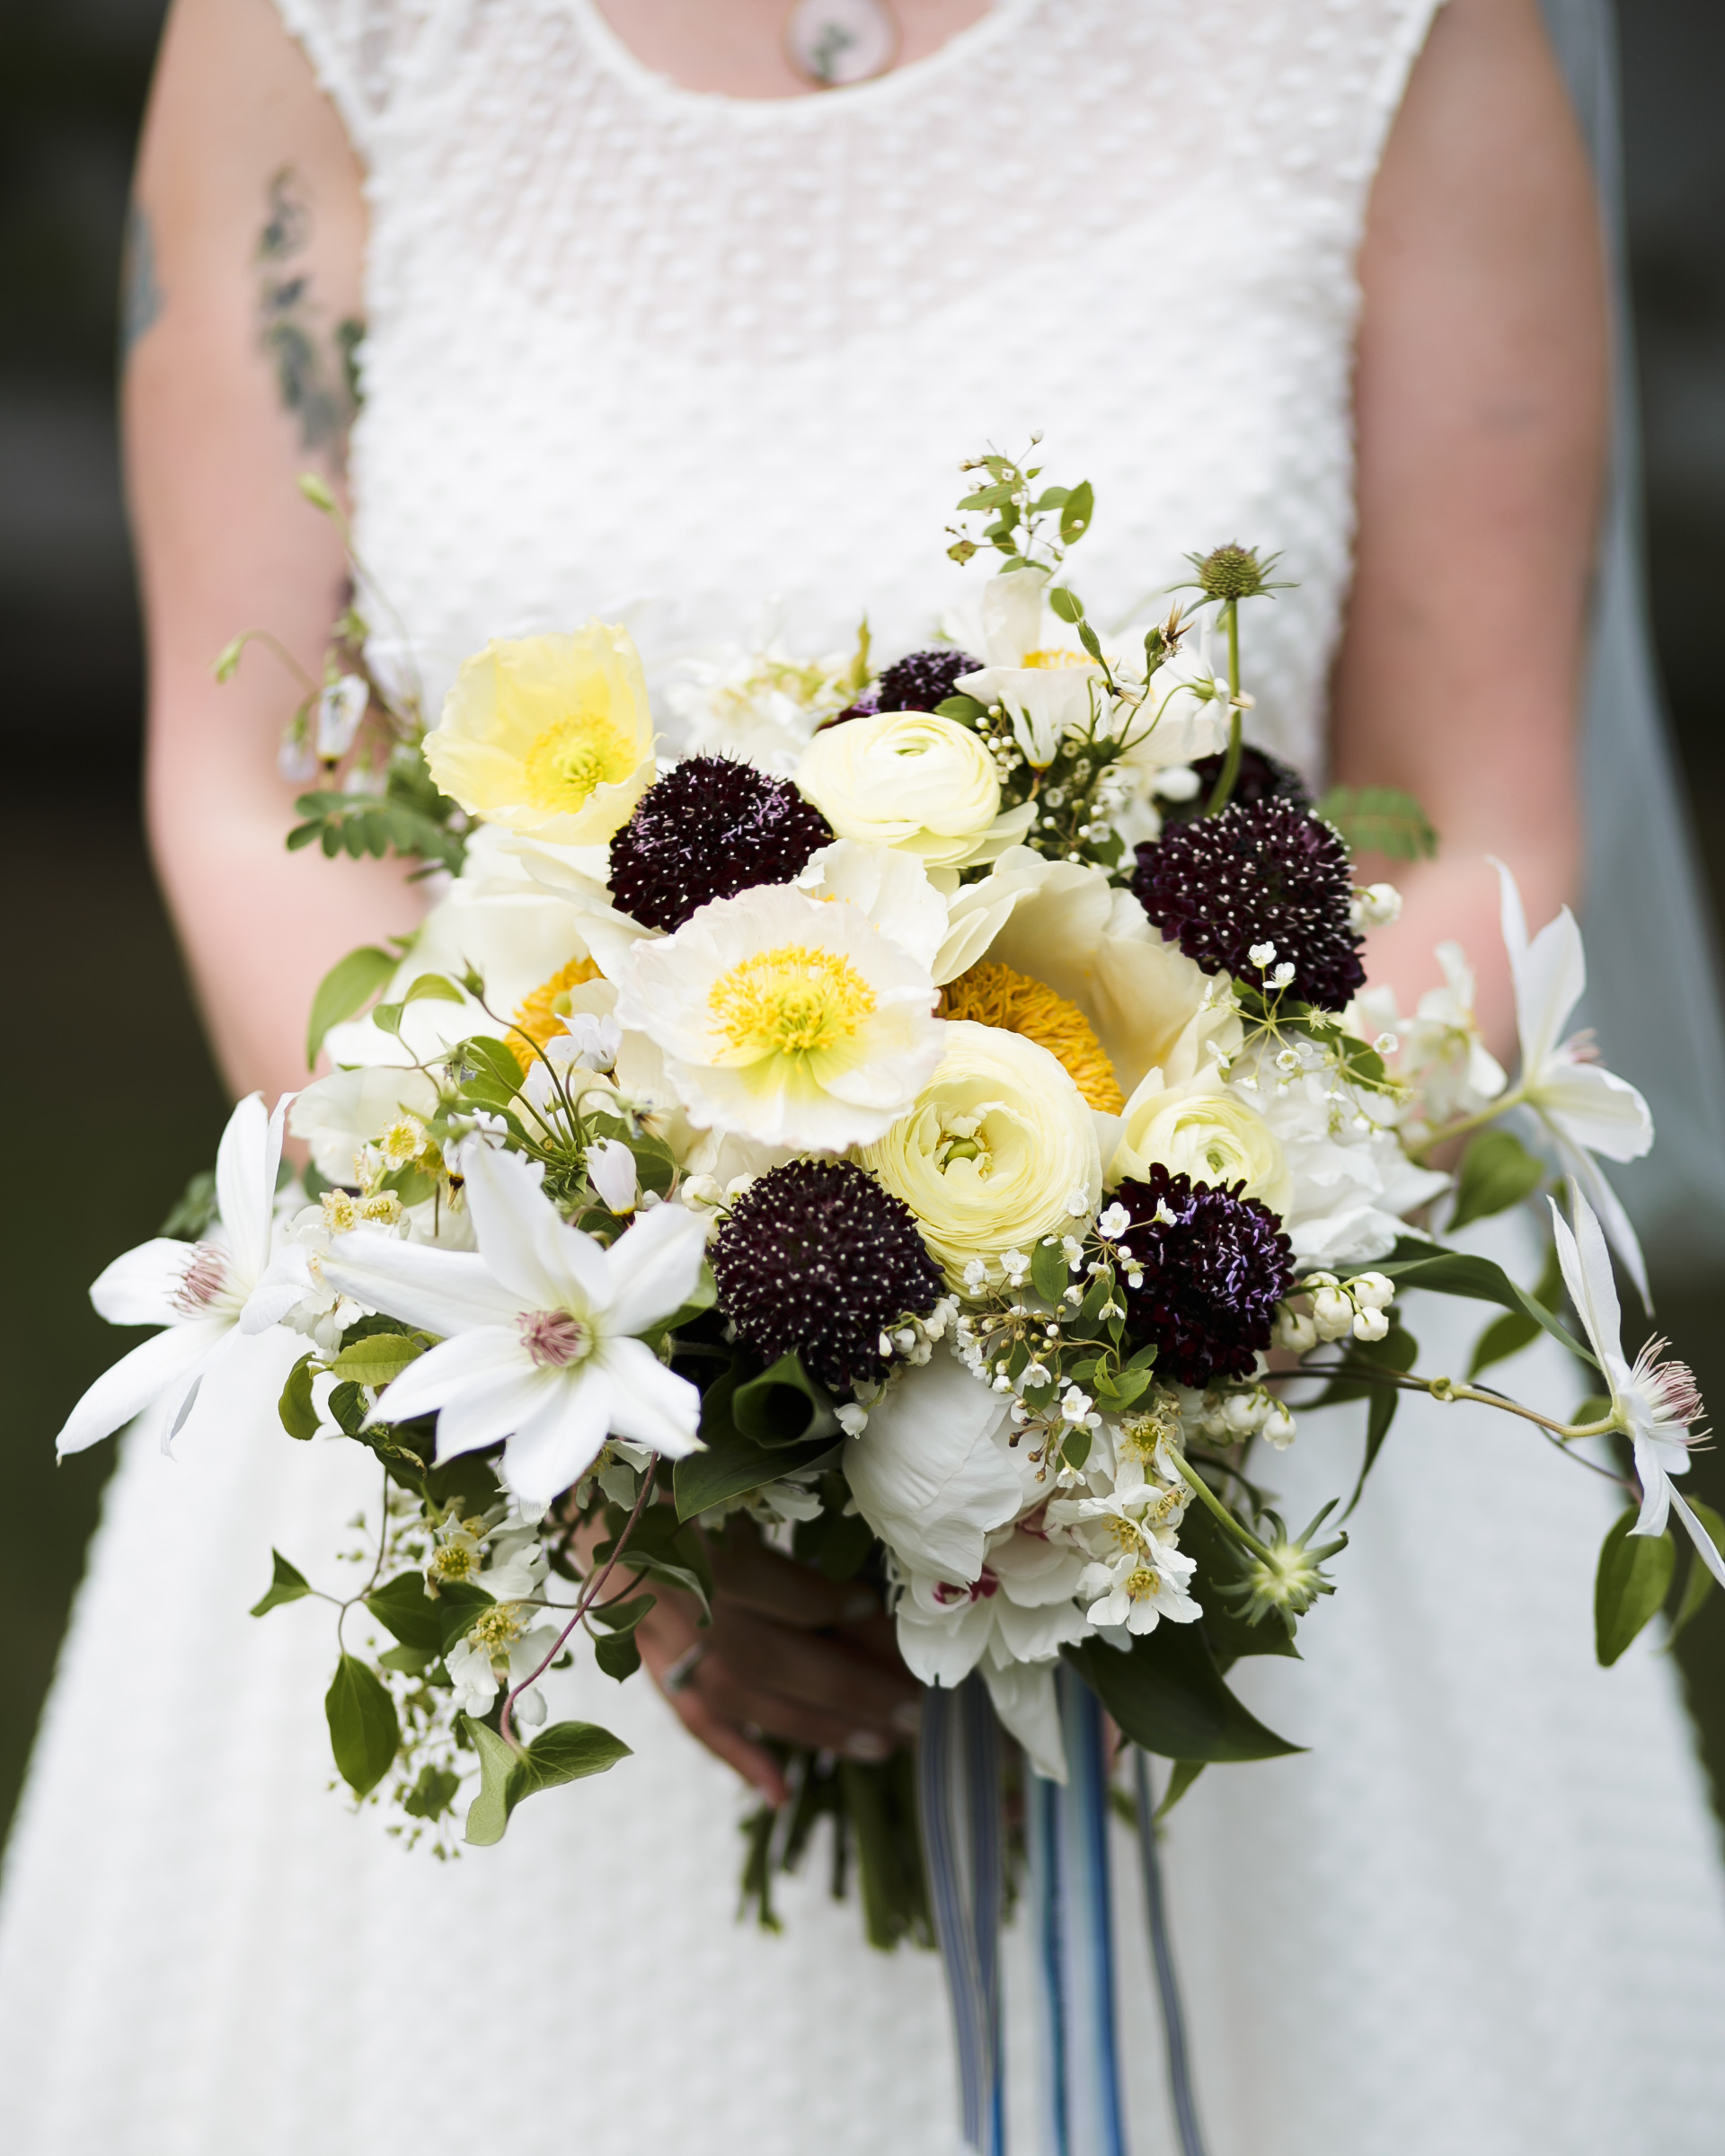 kelly-marie-dave-wedding-bouquet1-0414.jpg